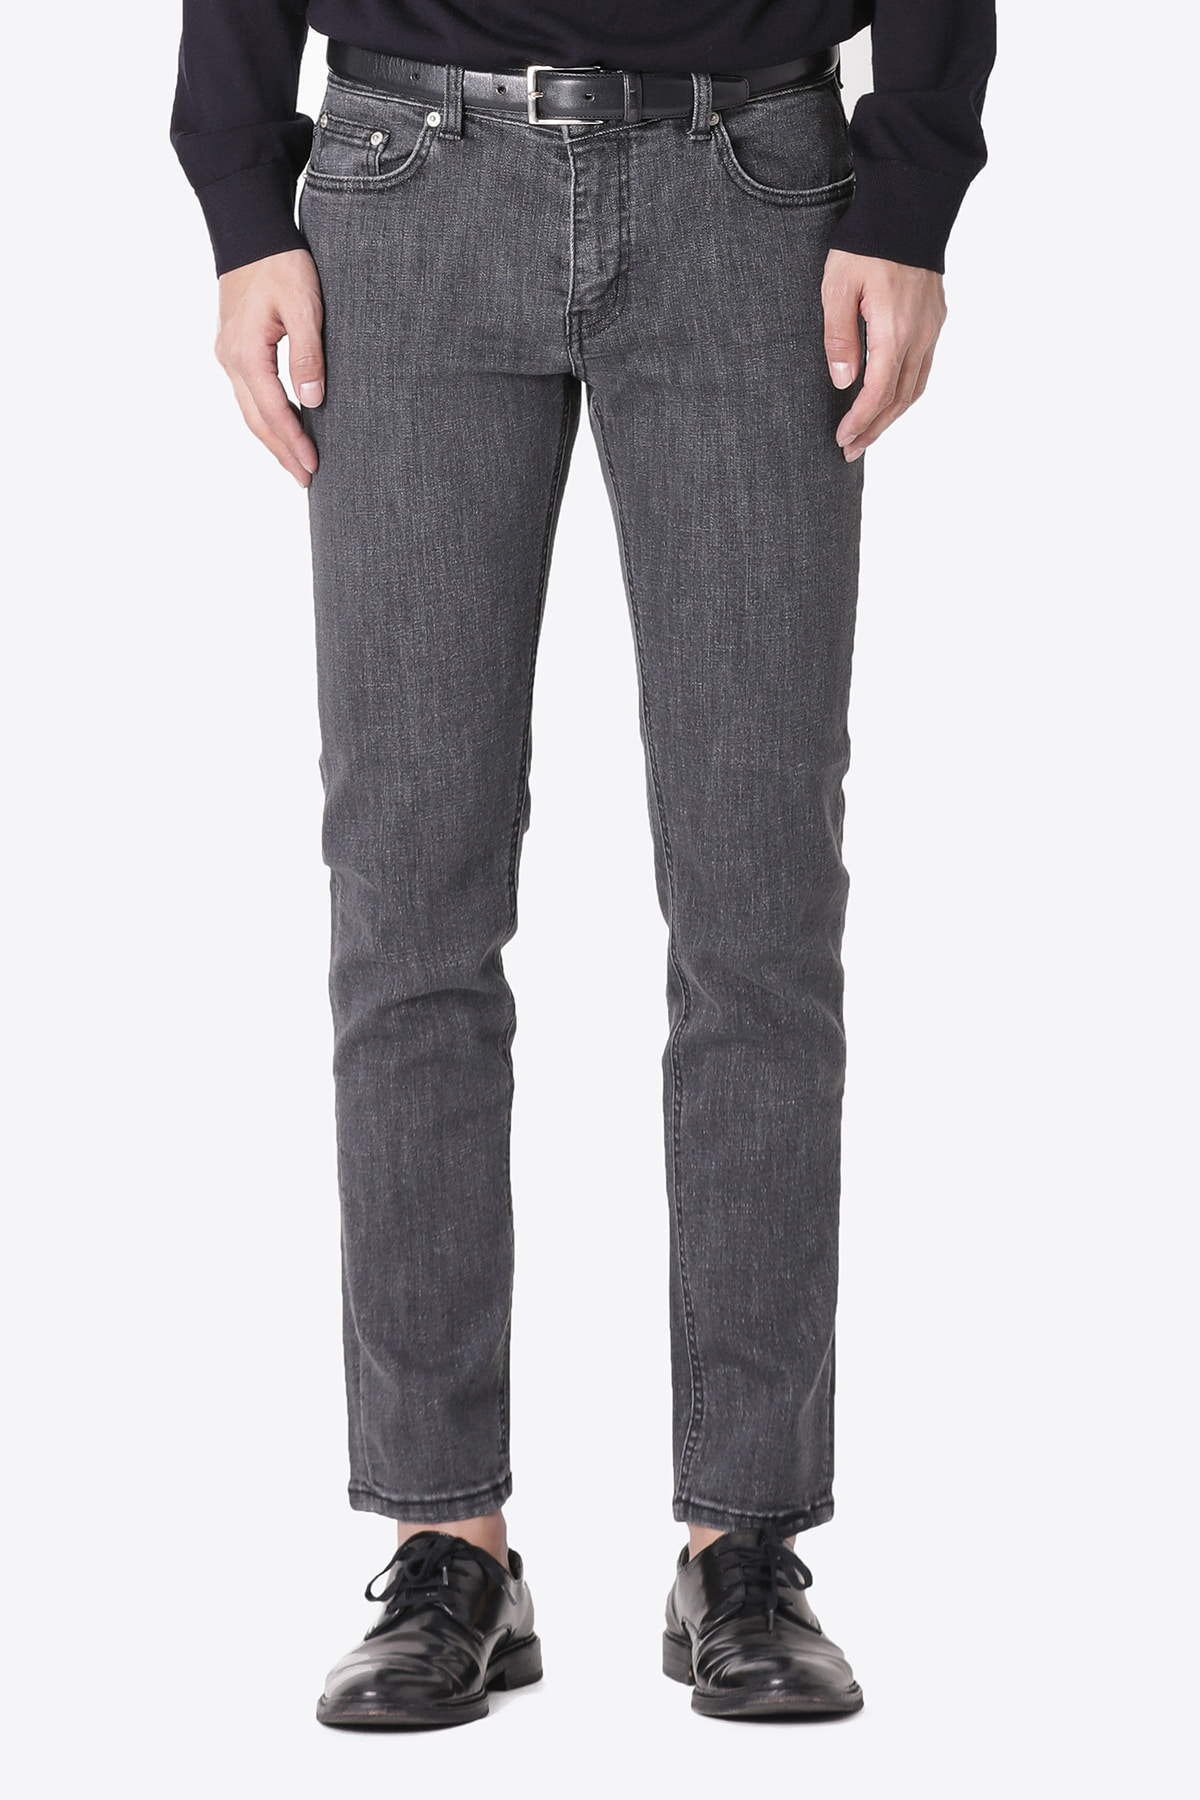 페이탈리즘 #0167 charcoal grey washed slim crop fit